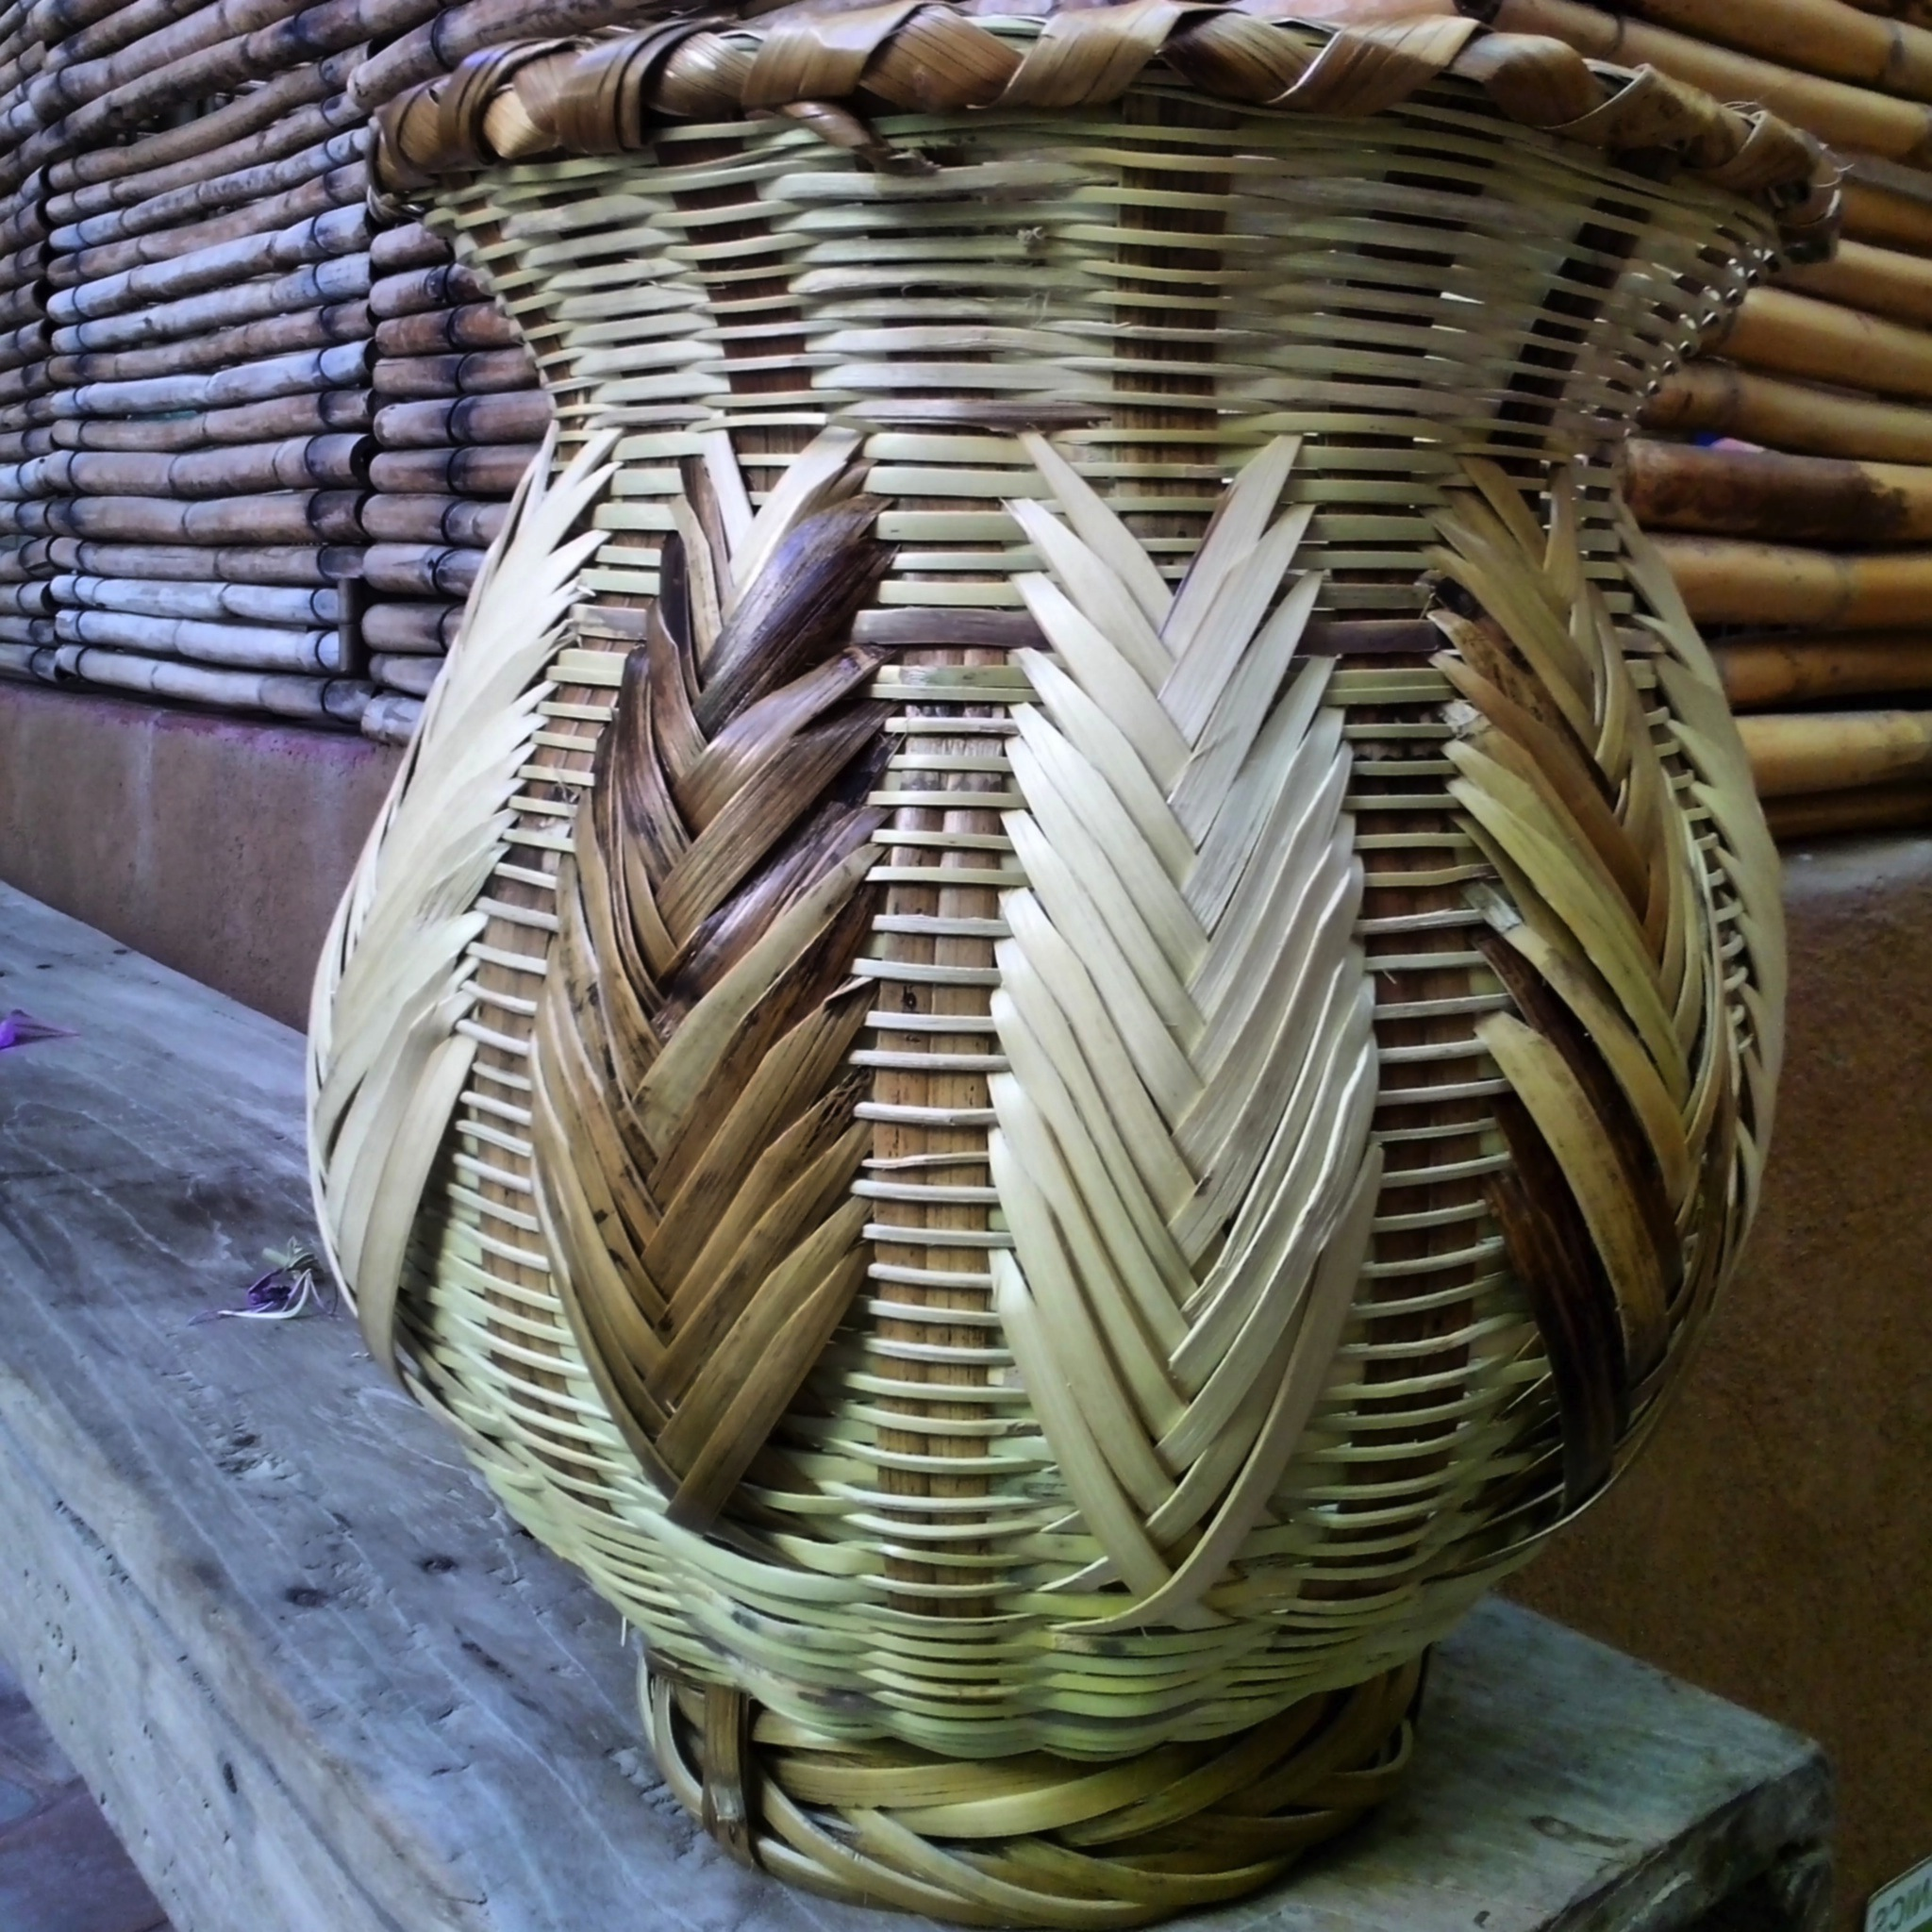 First basket complete with decorative motif